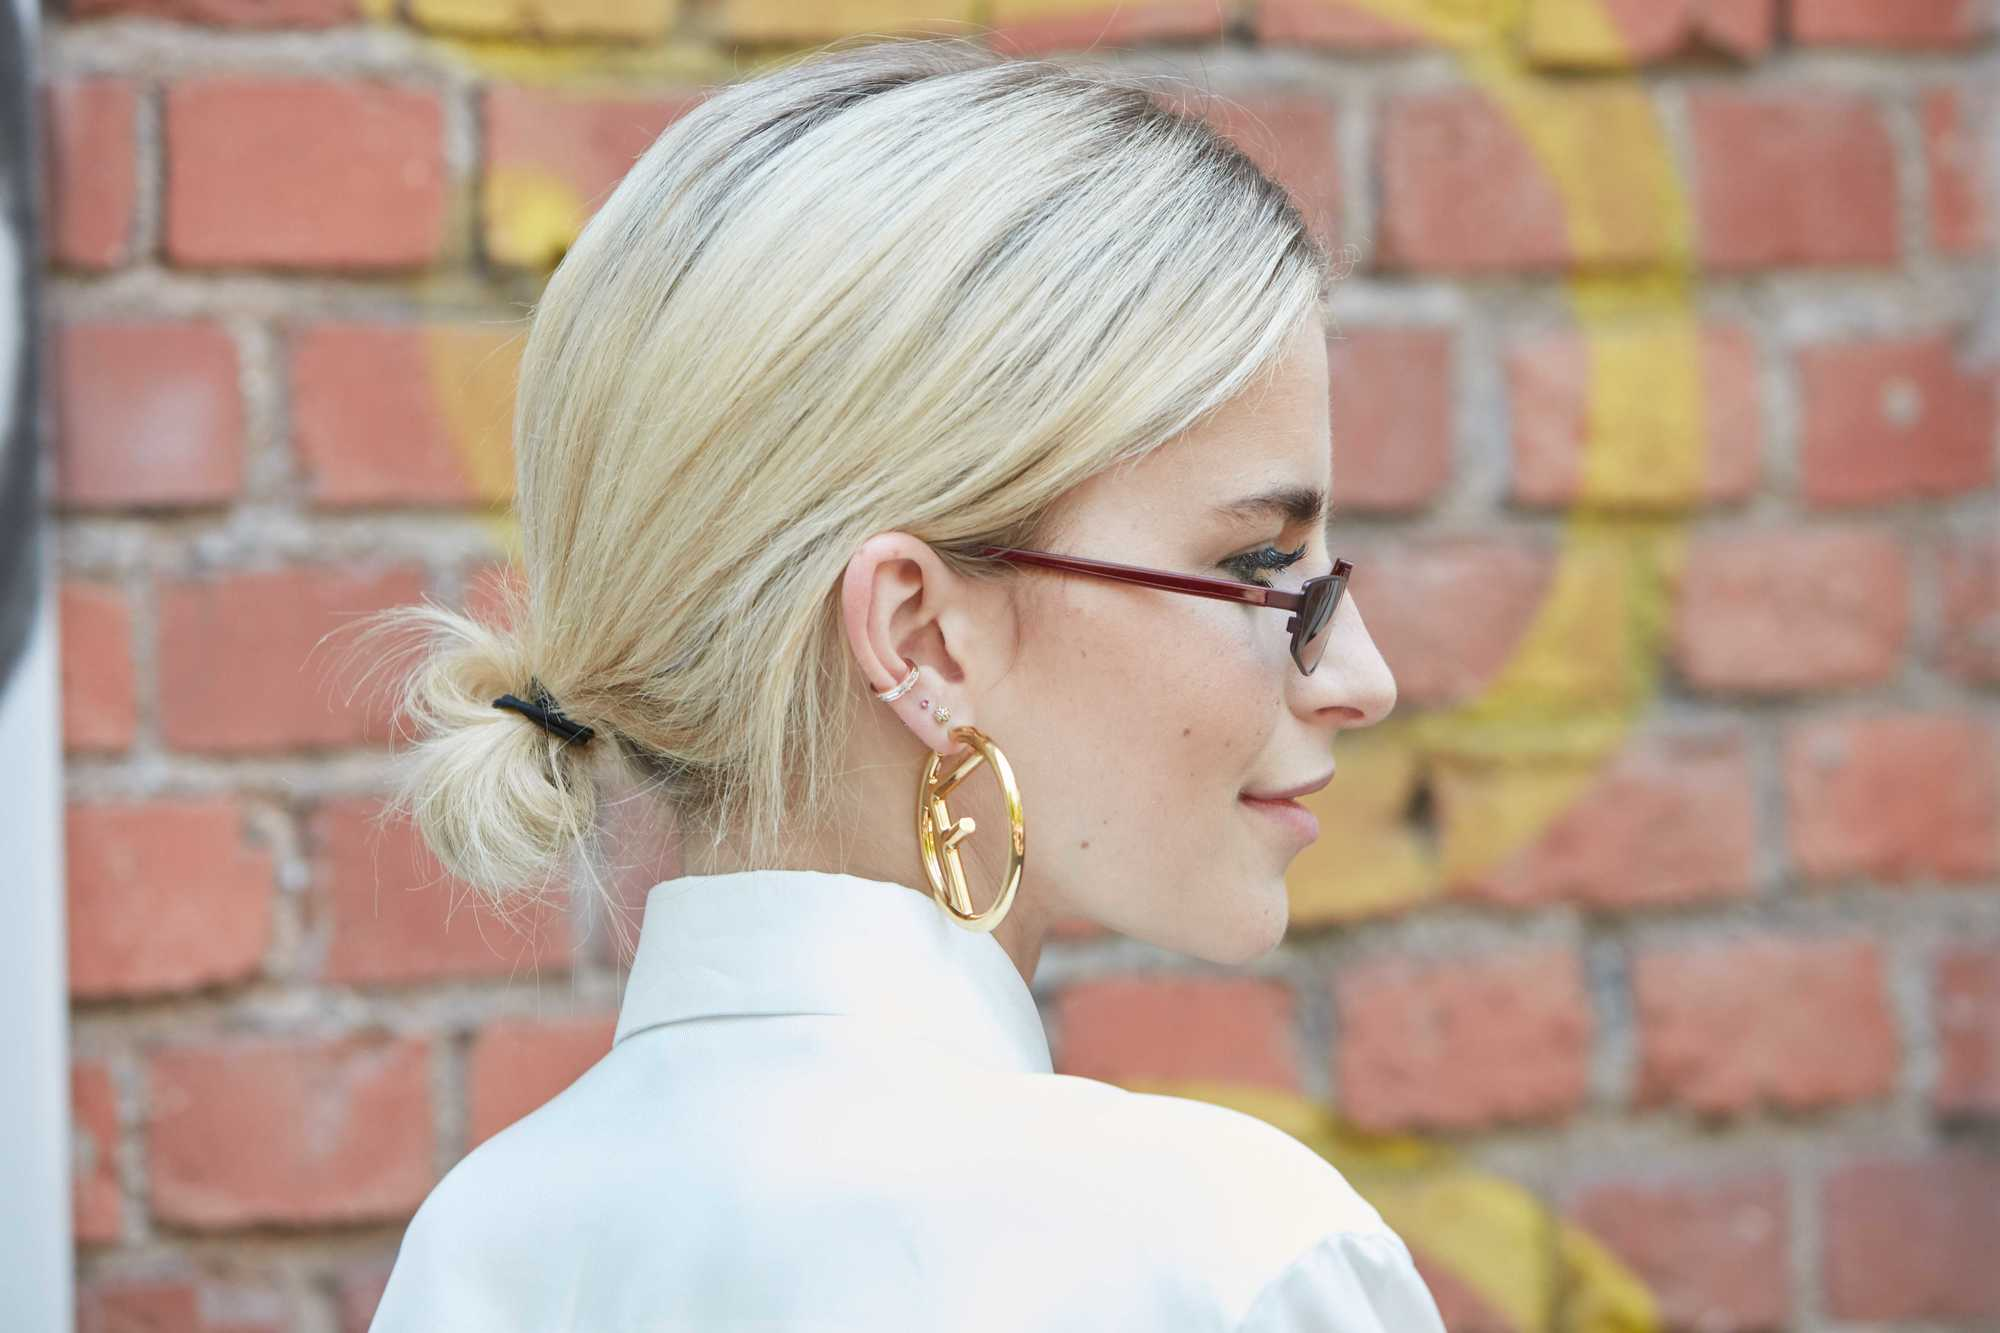 How to style thin hair: Caroline Daur with her platinum blonde short and fine hair styled into a low bun, wearing white shirt and hoop earrings on the street